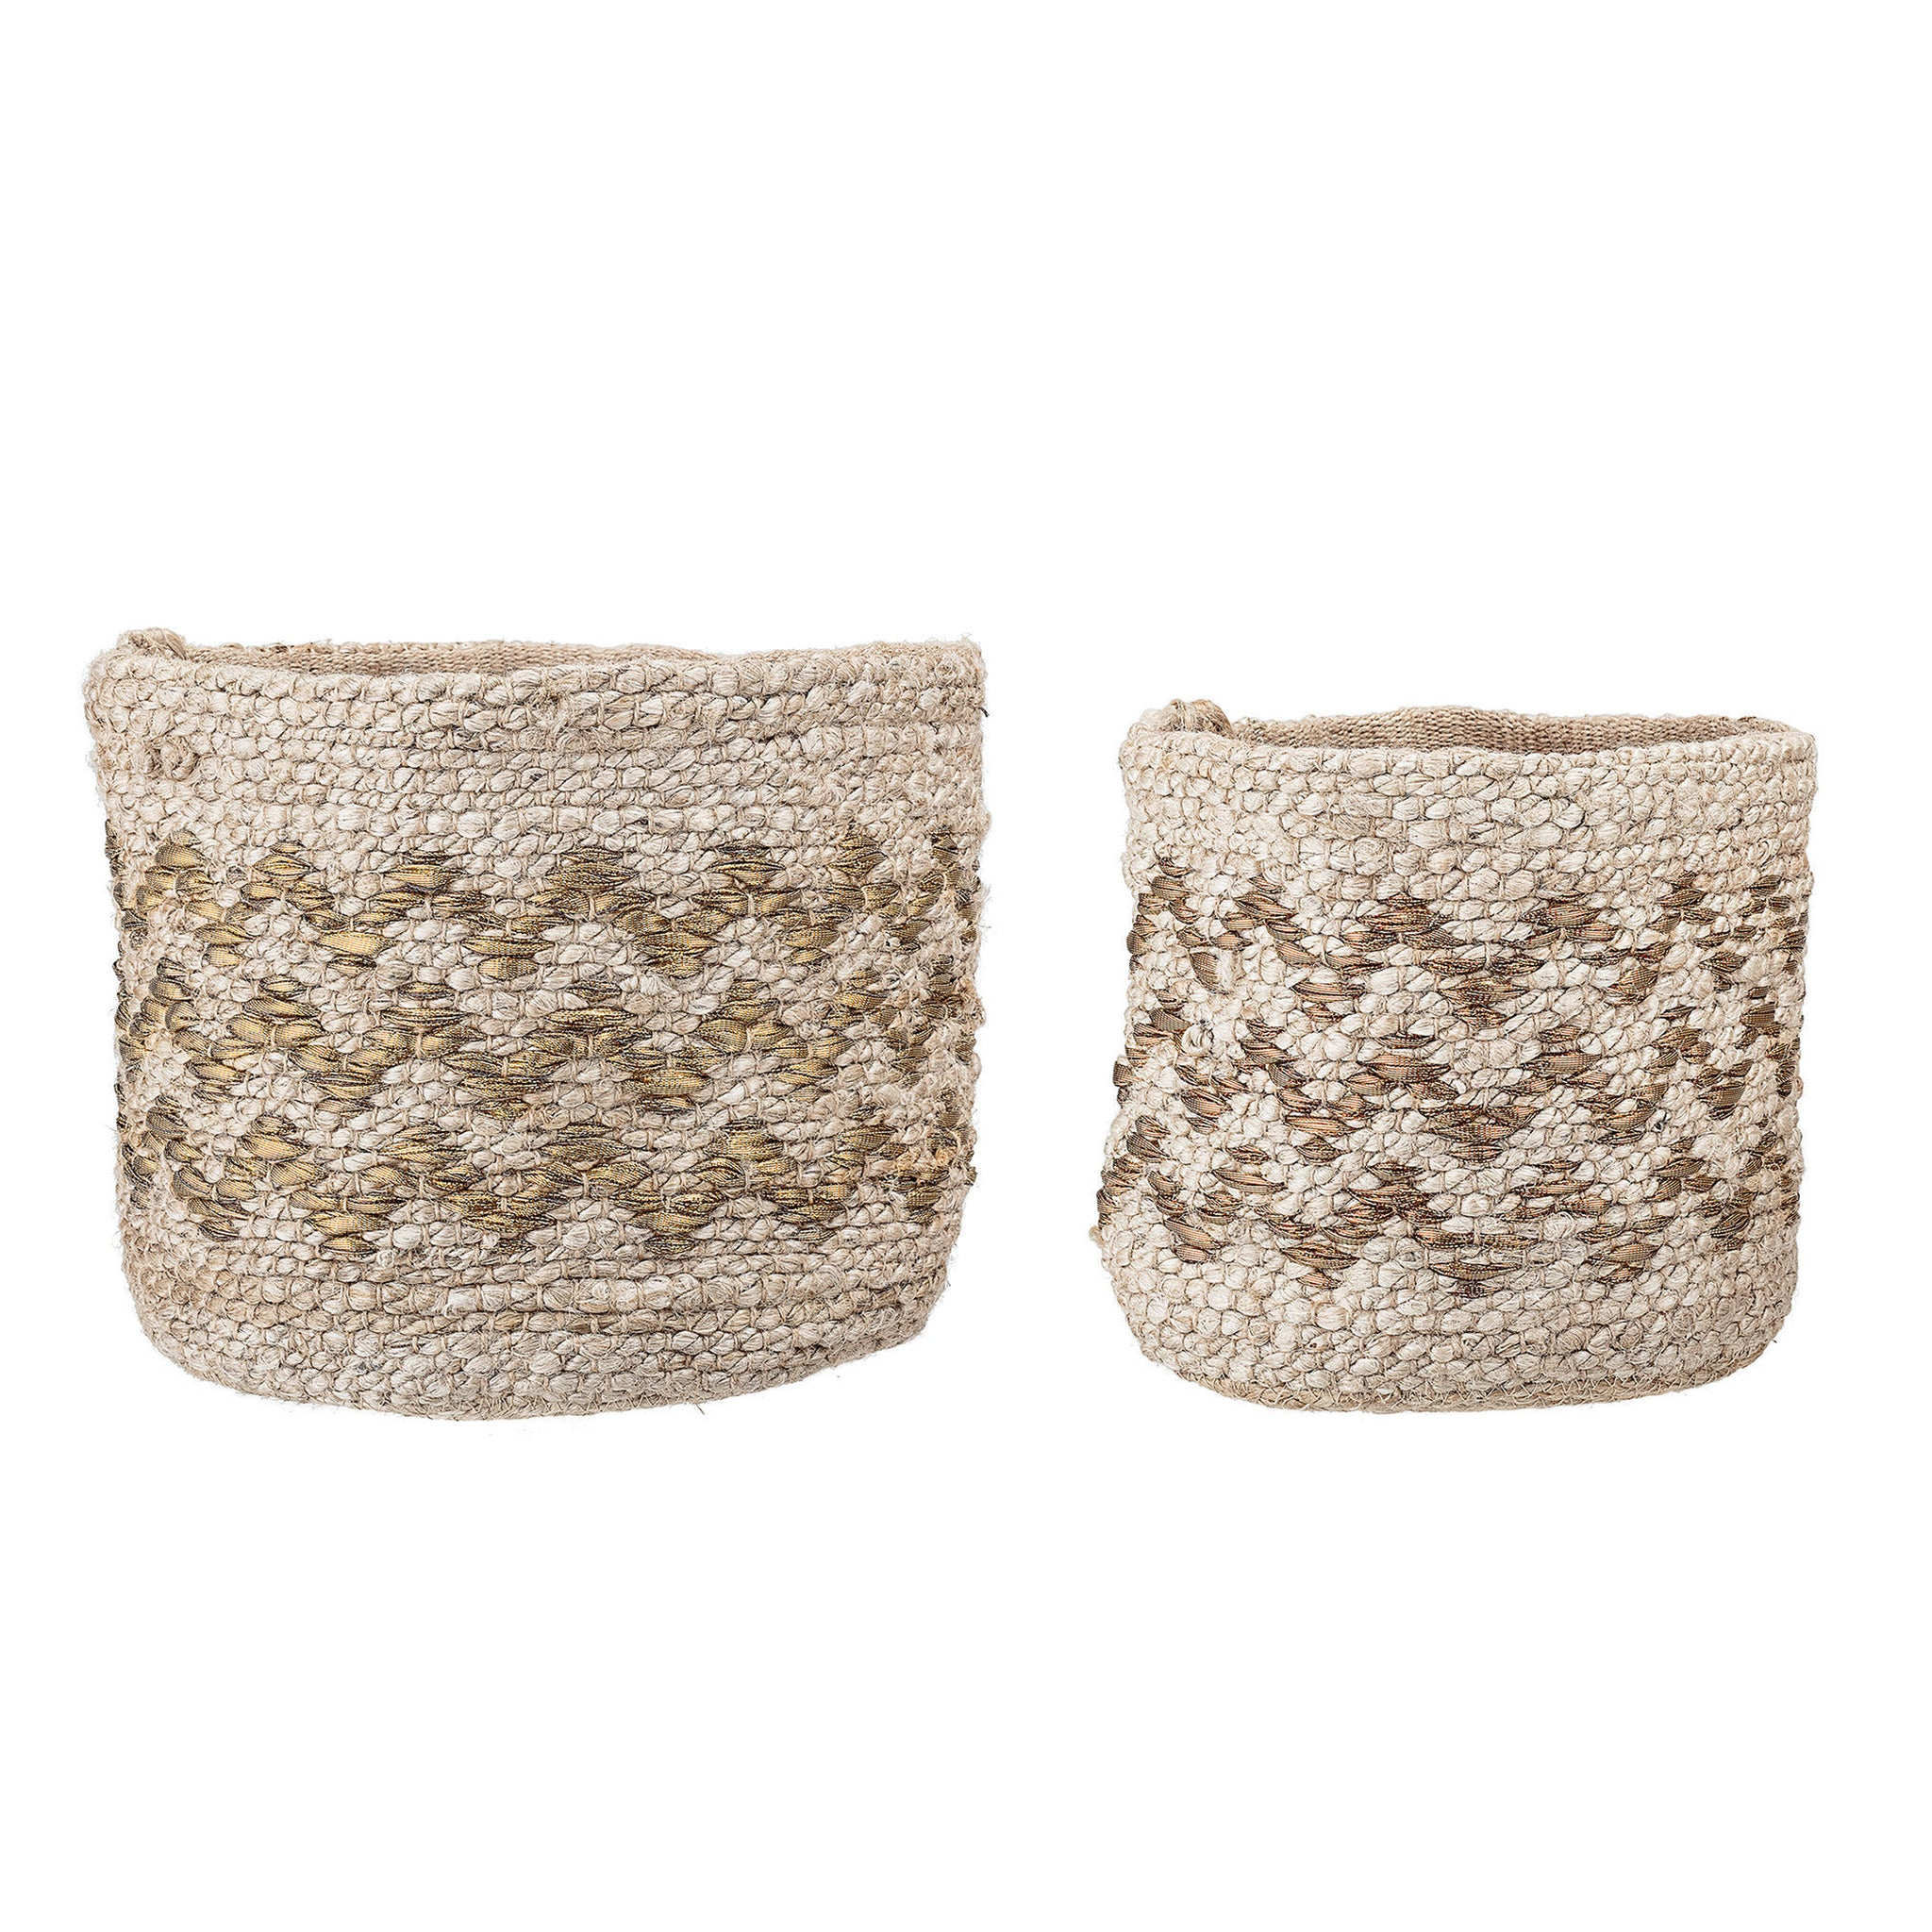 Hand Braided Jute Baskets with Gold Chevron Pattern (Set of 2 Sizes)